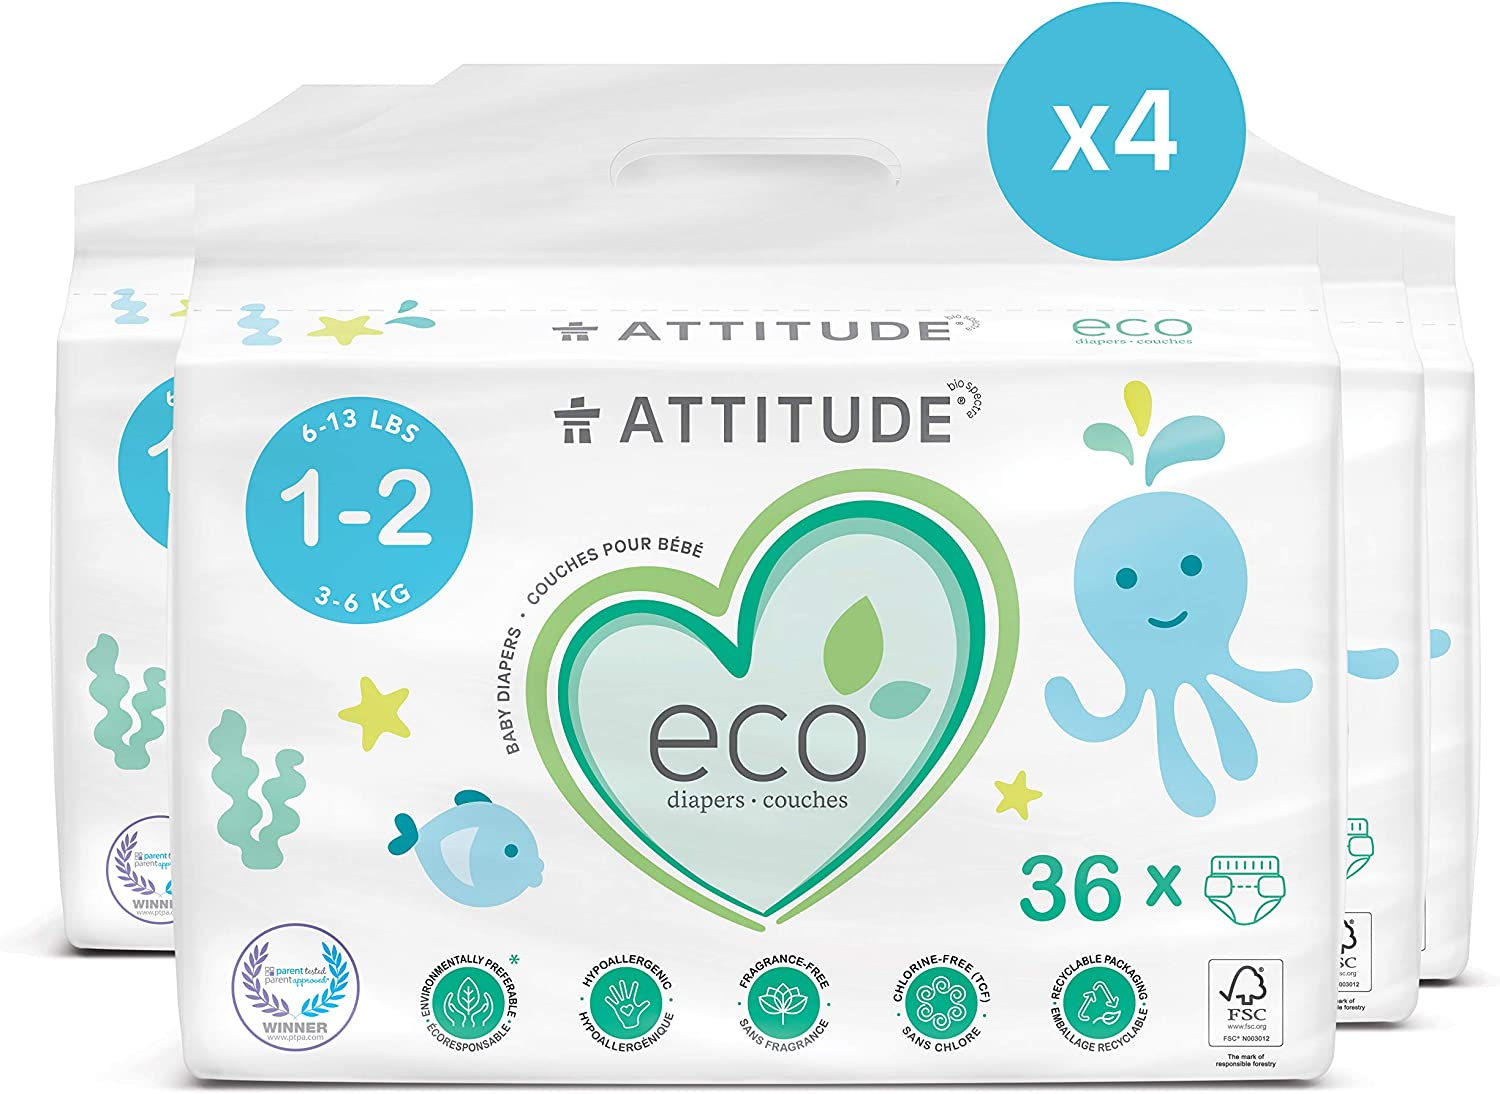 Non-toxic Chlorine-Free /& Leak-Free Size 1-2 4 packs of 36 Plain White Safe for Sensitive Skin Eco-friendly 144 Count ATTITUDE Biodegradable Baby Diapers 6-13 lbs // 3-6 kg